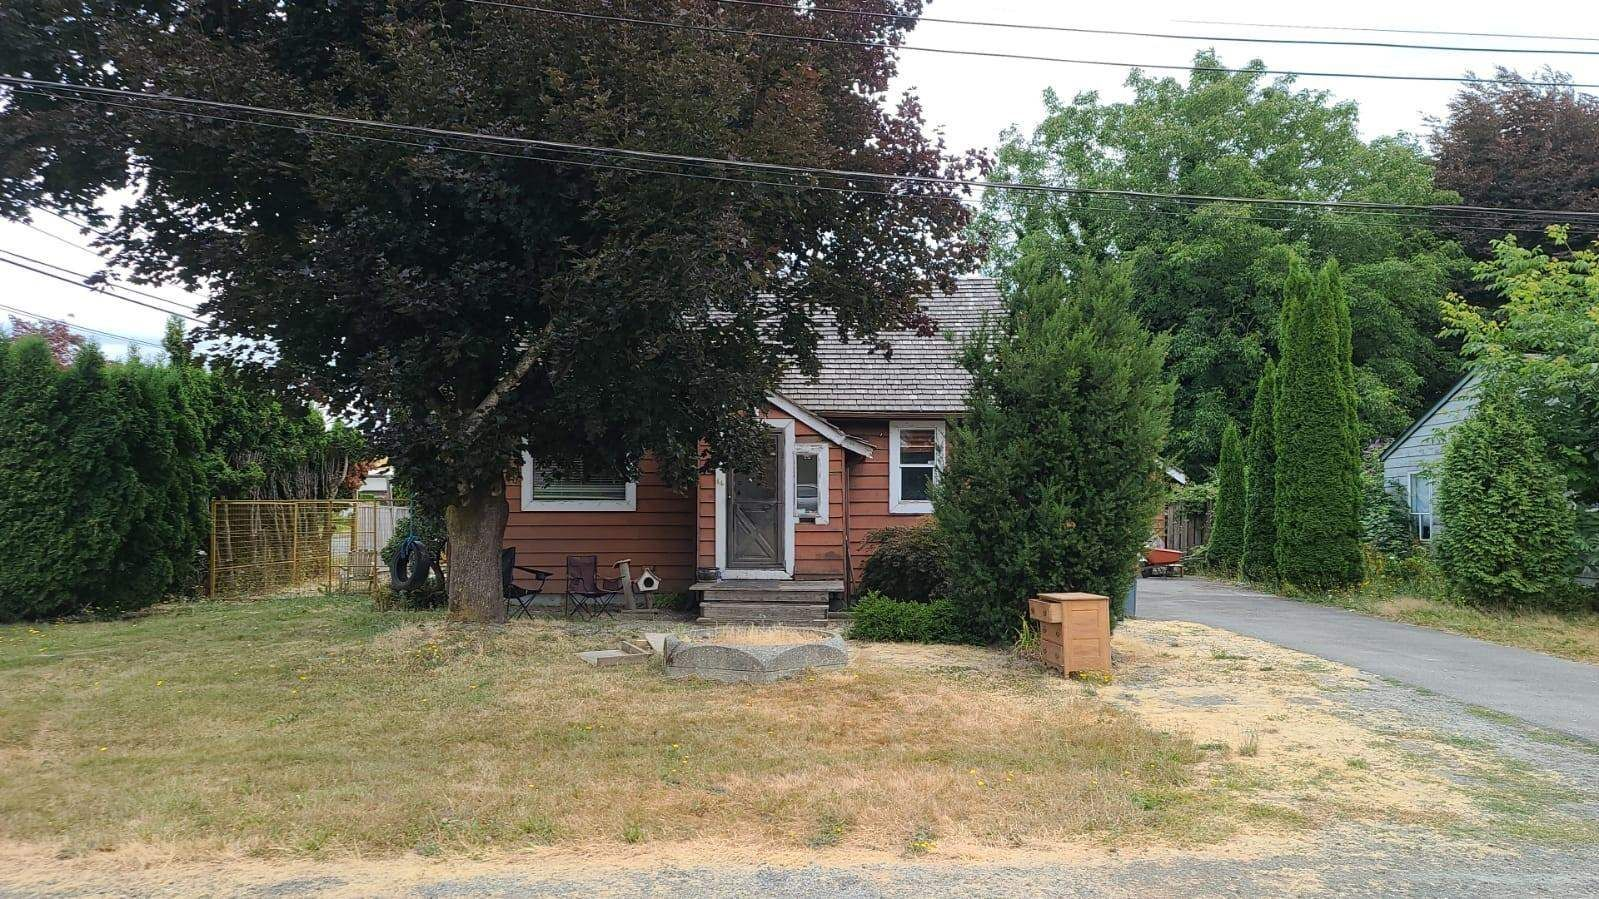 Main Photo: 9640 ST. DAVID Street in Chilliwack: Chilliwack N Yale-Well House for sale : MLS®# R2603708